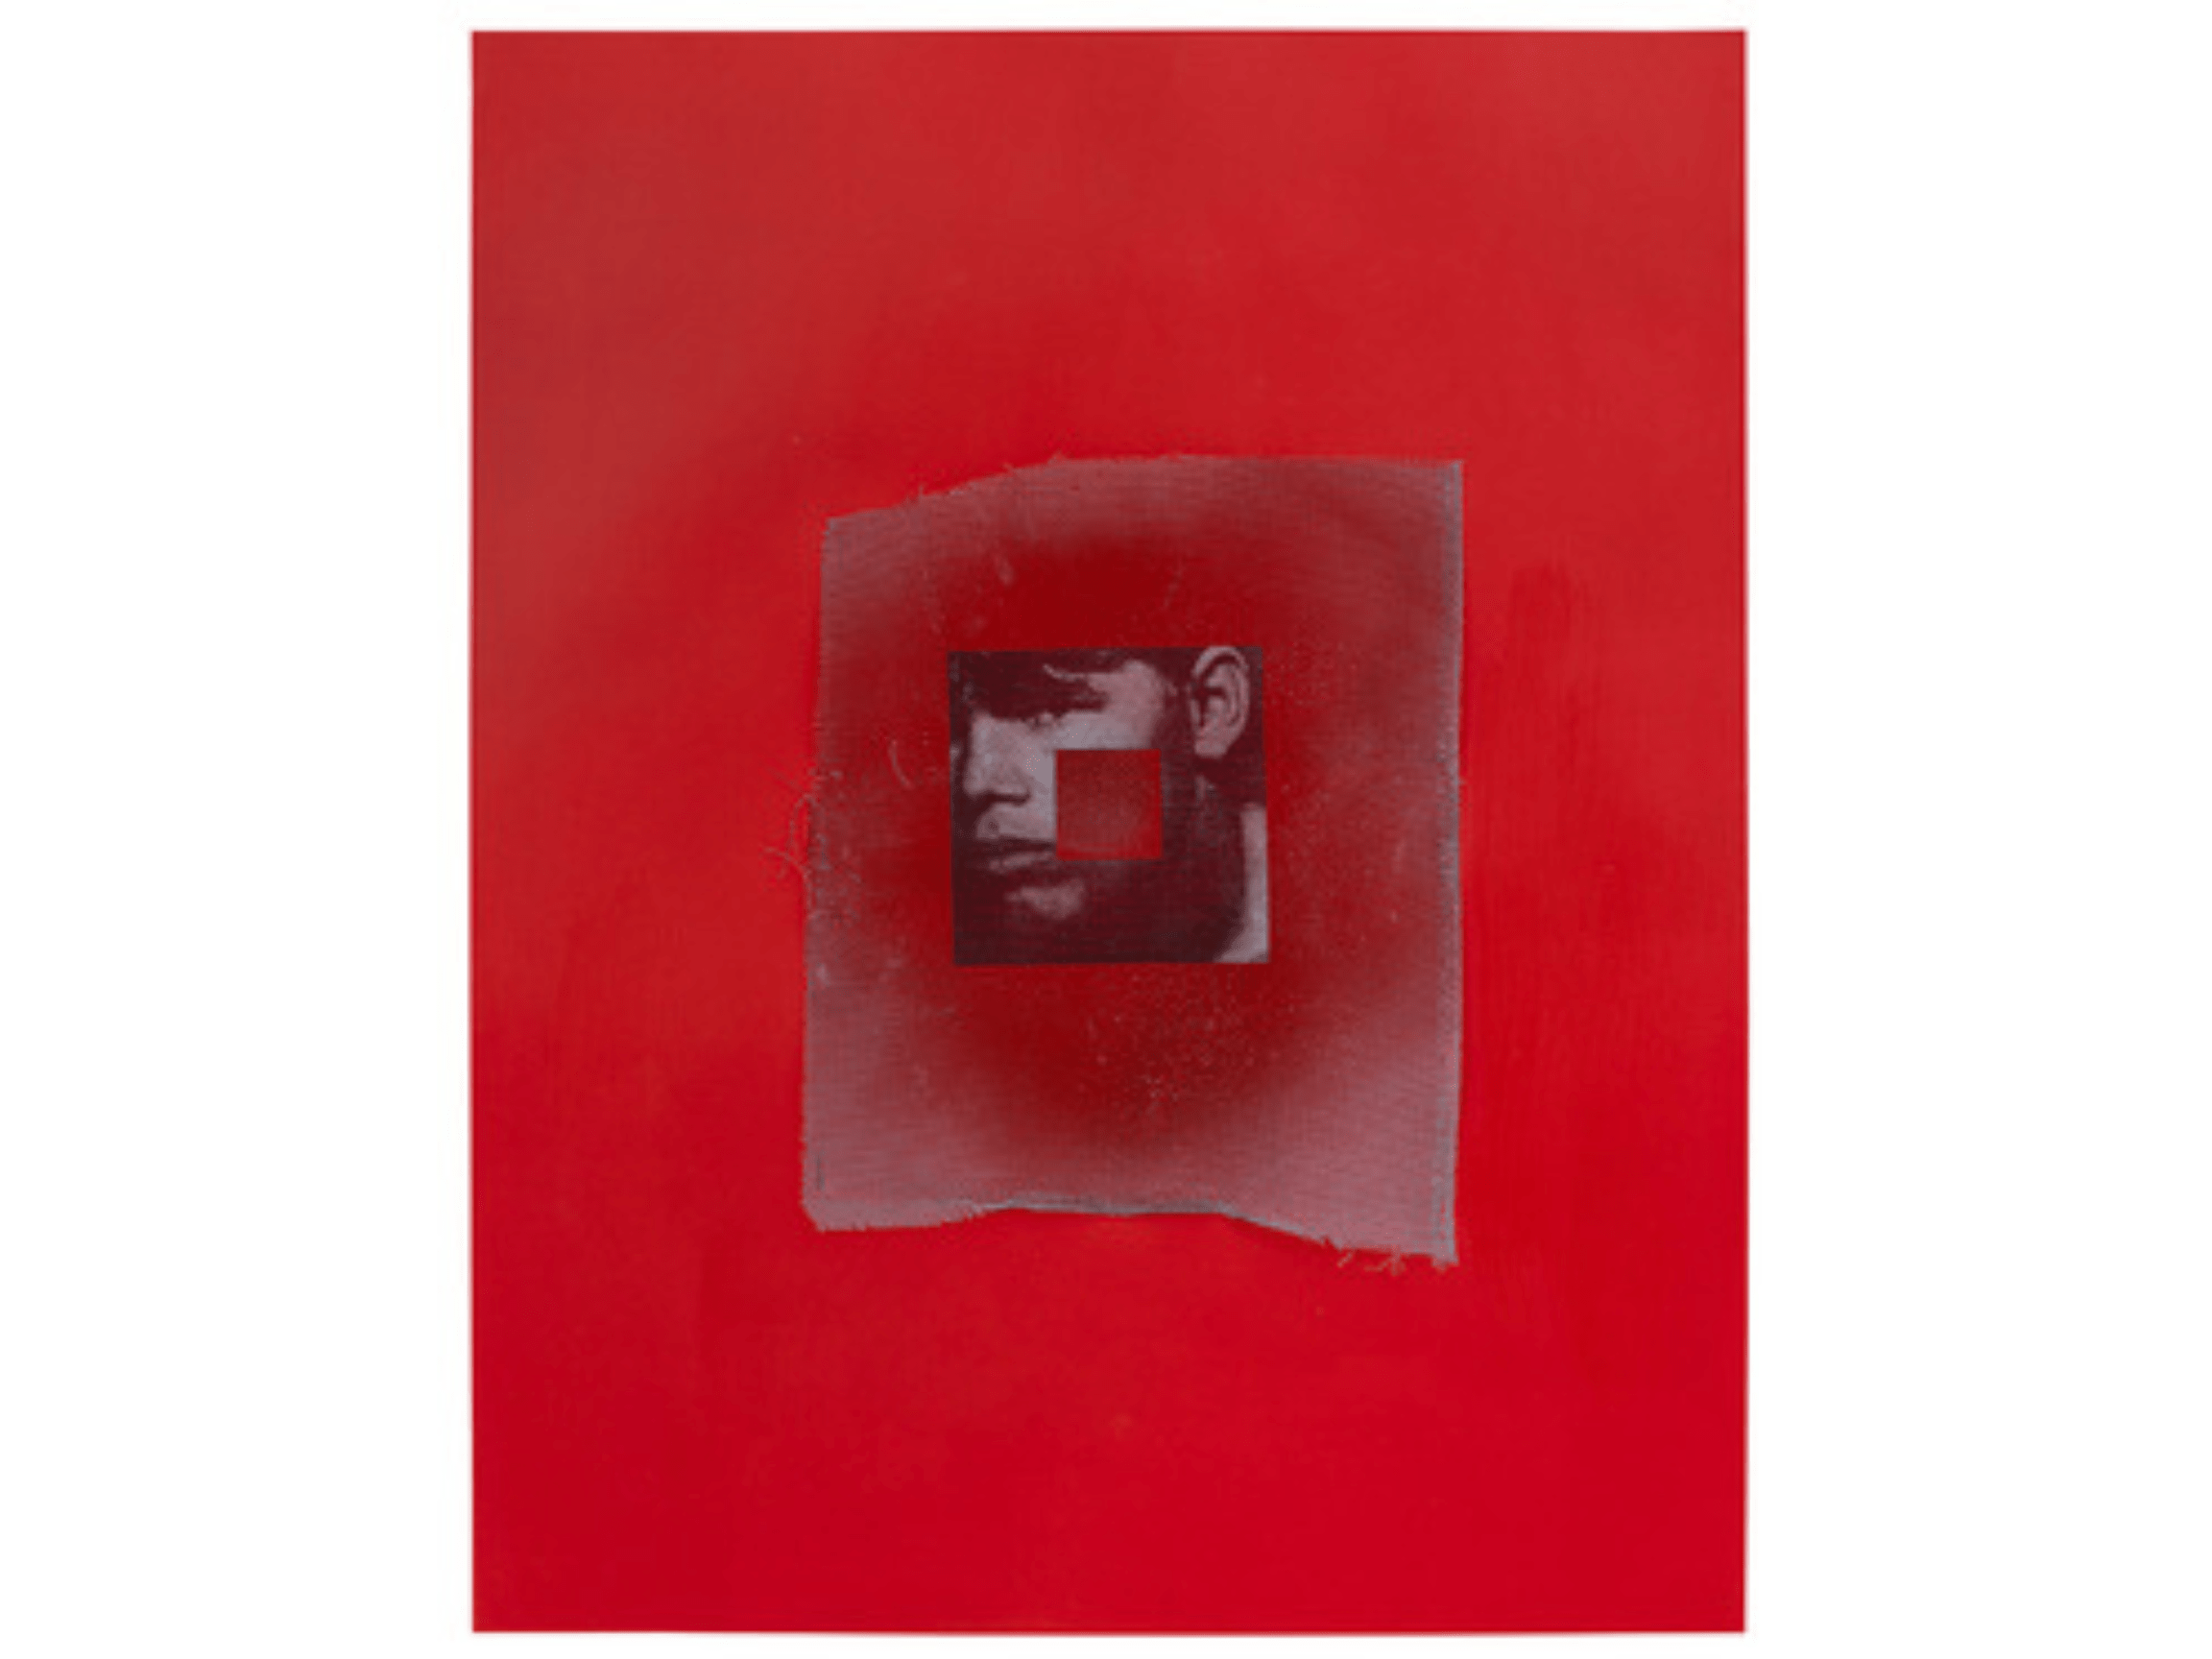 A square, black and white photograph of a boy's face with another square of red centered over it, all atop an aluminum screen painted red, against a red background.